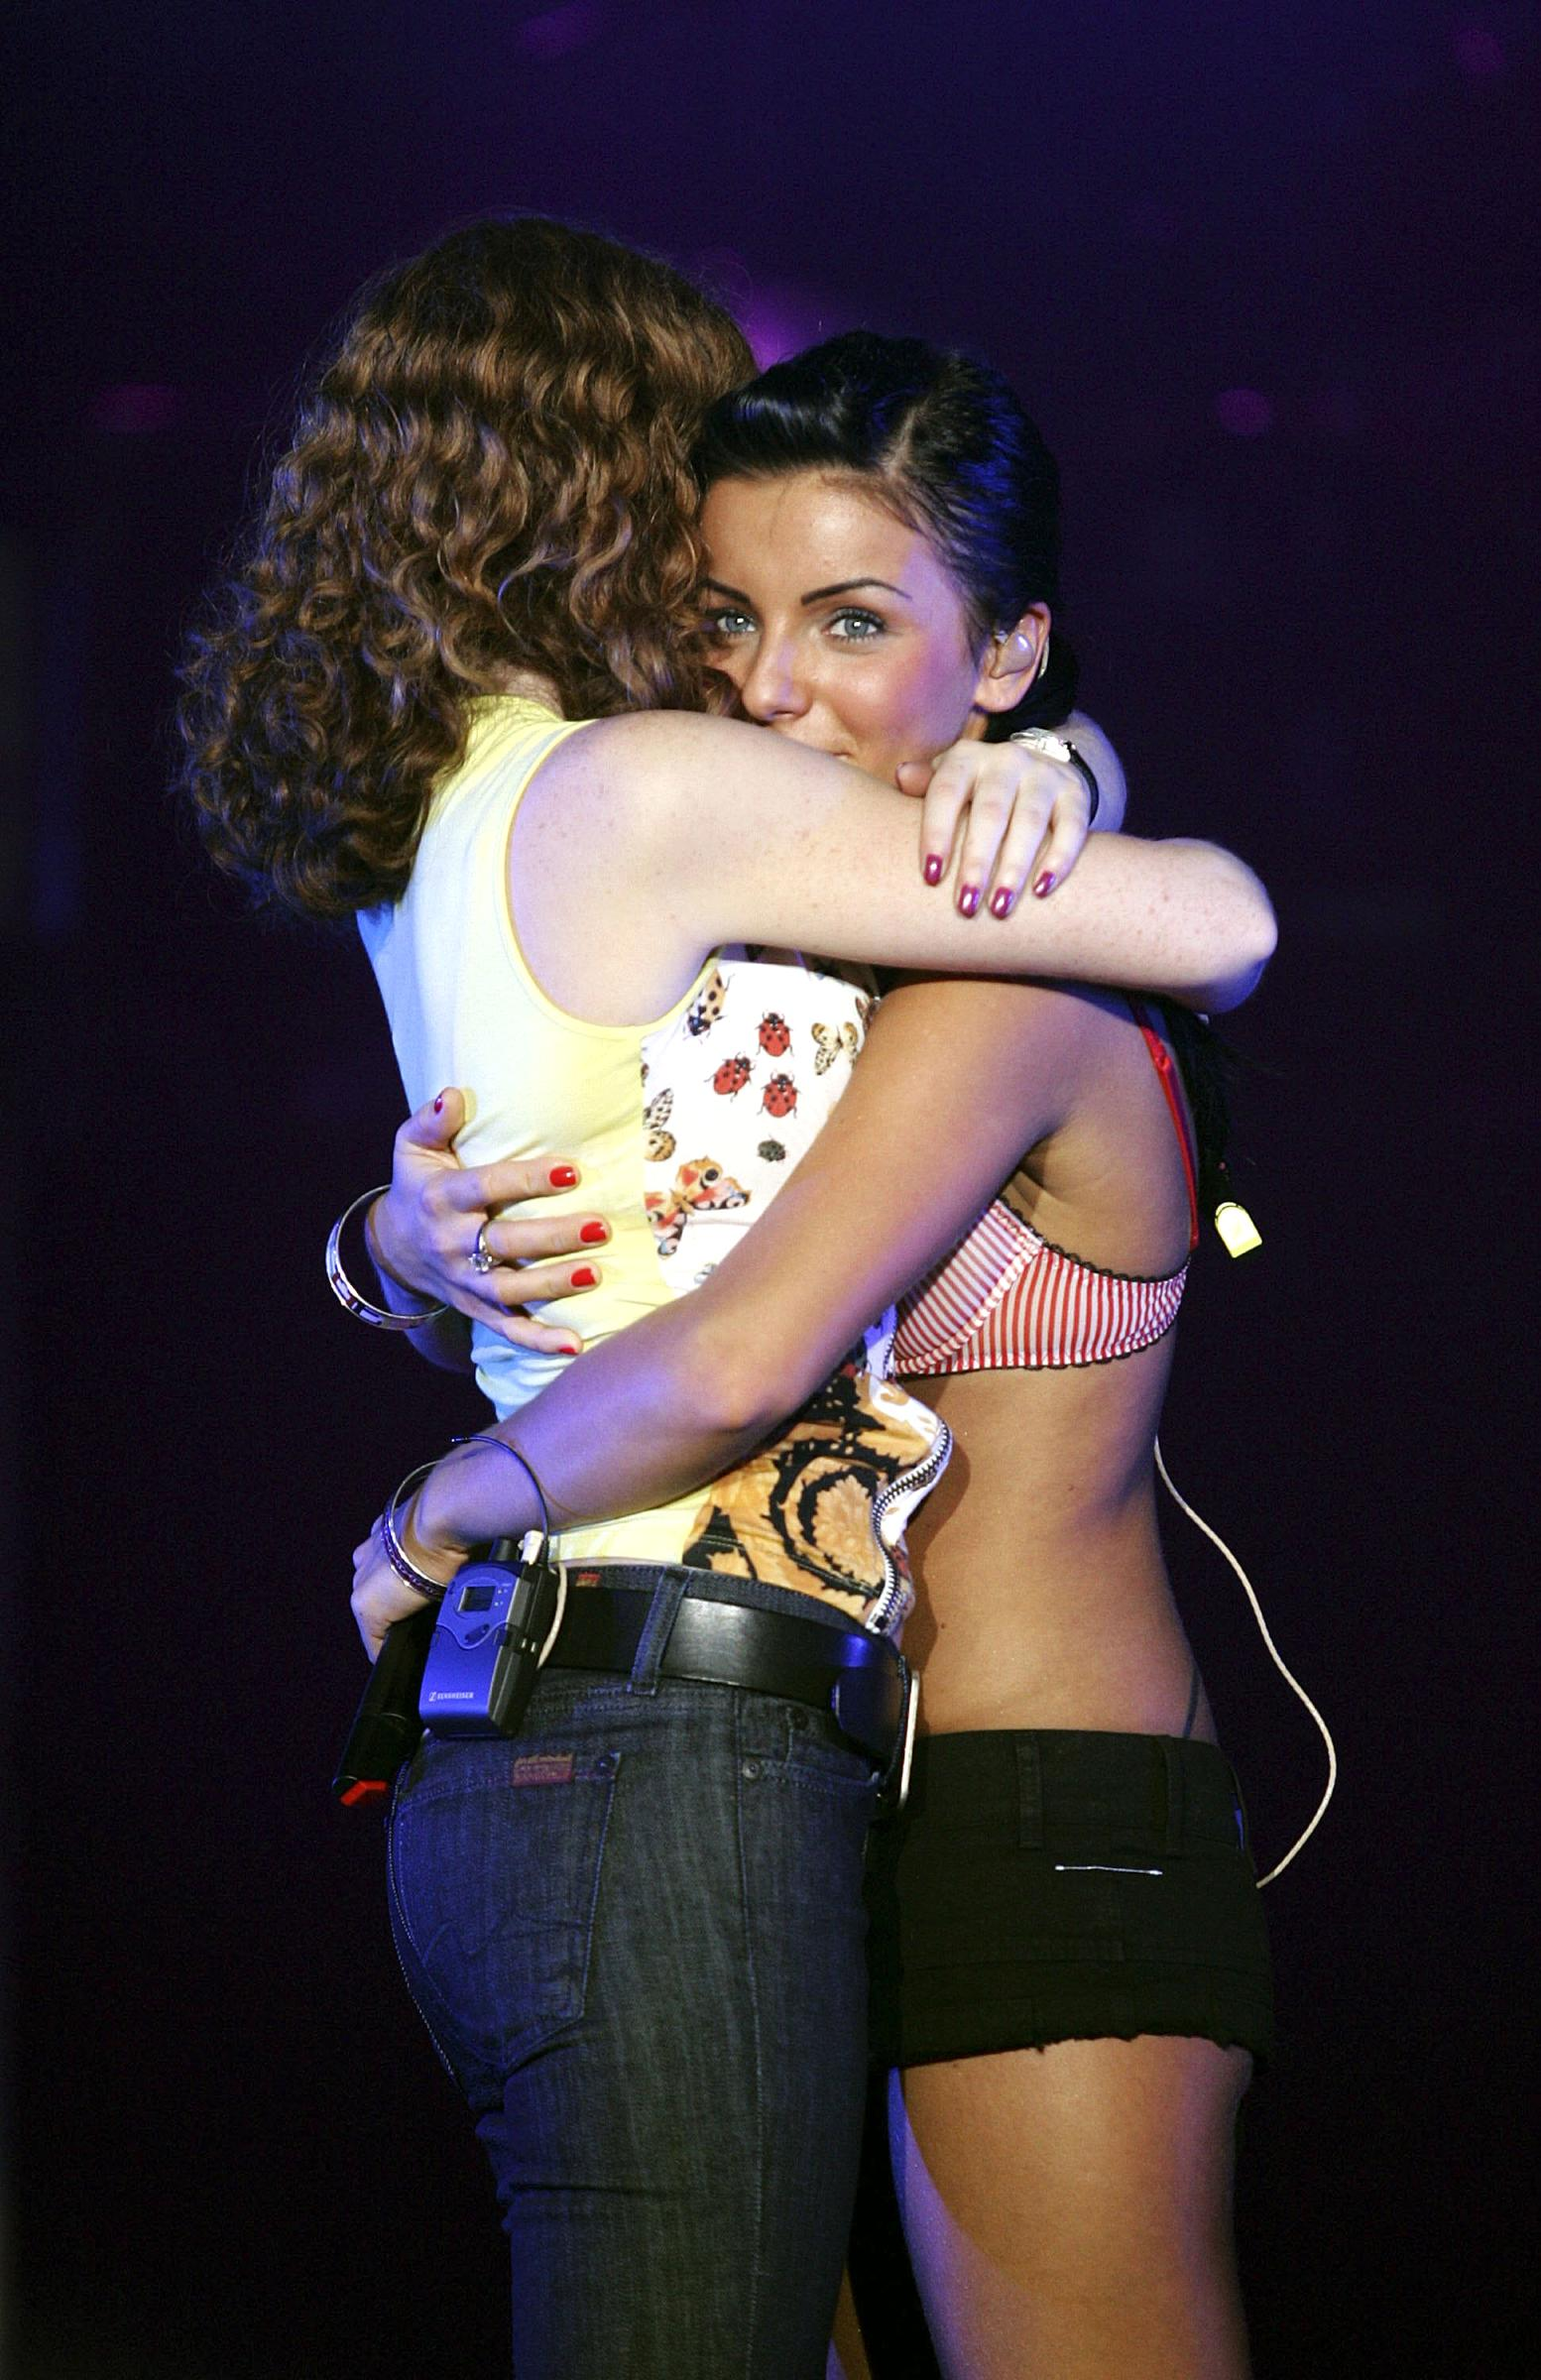 ТАТУ - Tatu Perform at The Olympic Hall in Seoul 19.09.2006